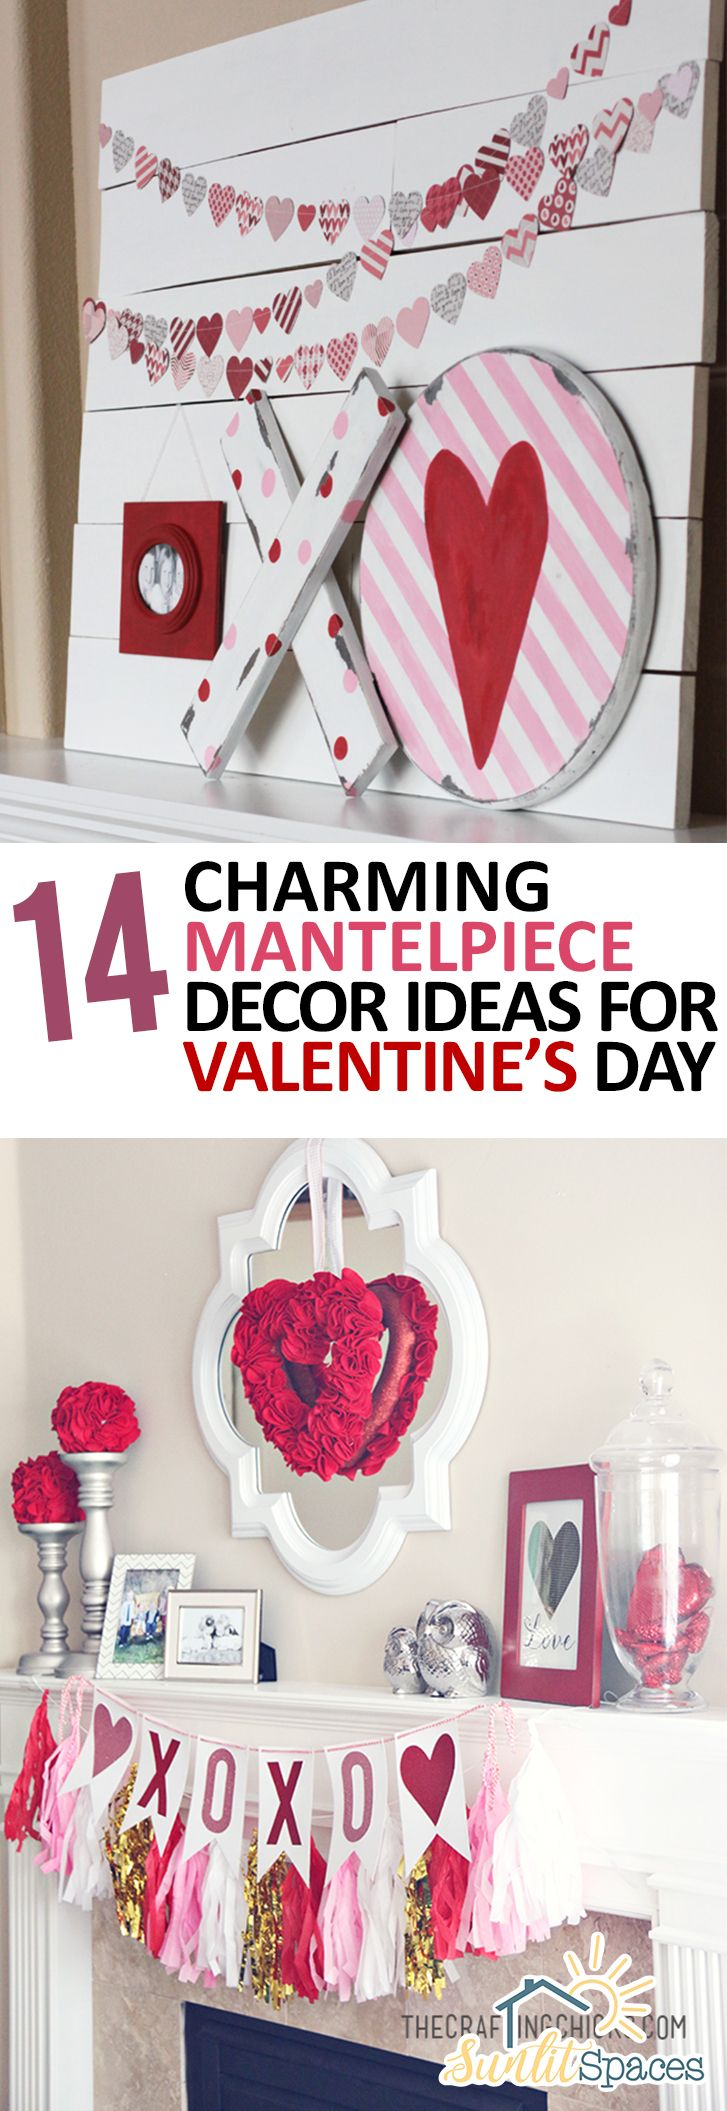 charming mantelpiece decor ideas for valentines day